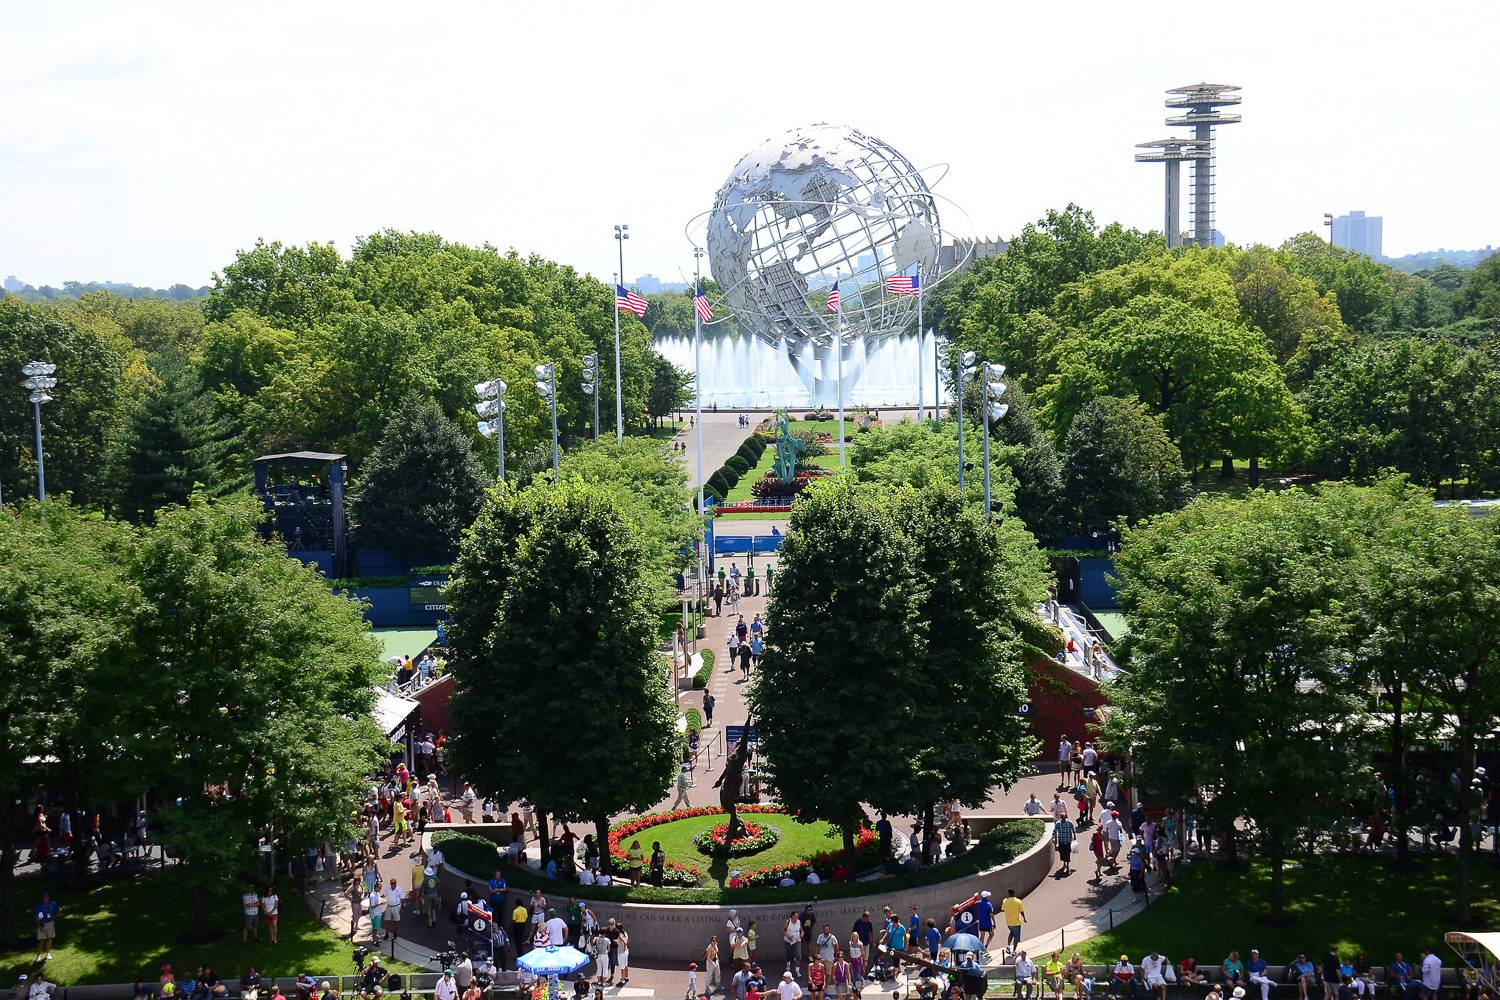 Image of the grounds of Flushing Meadows – Corona Park, the US Open, and the Unisphere in the background.